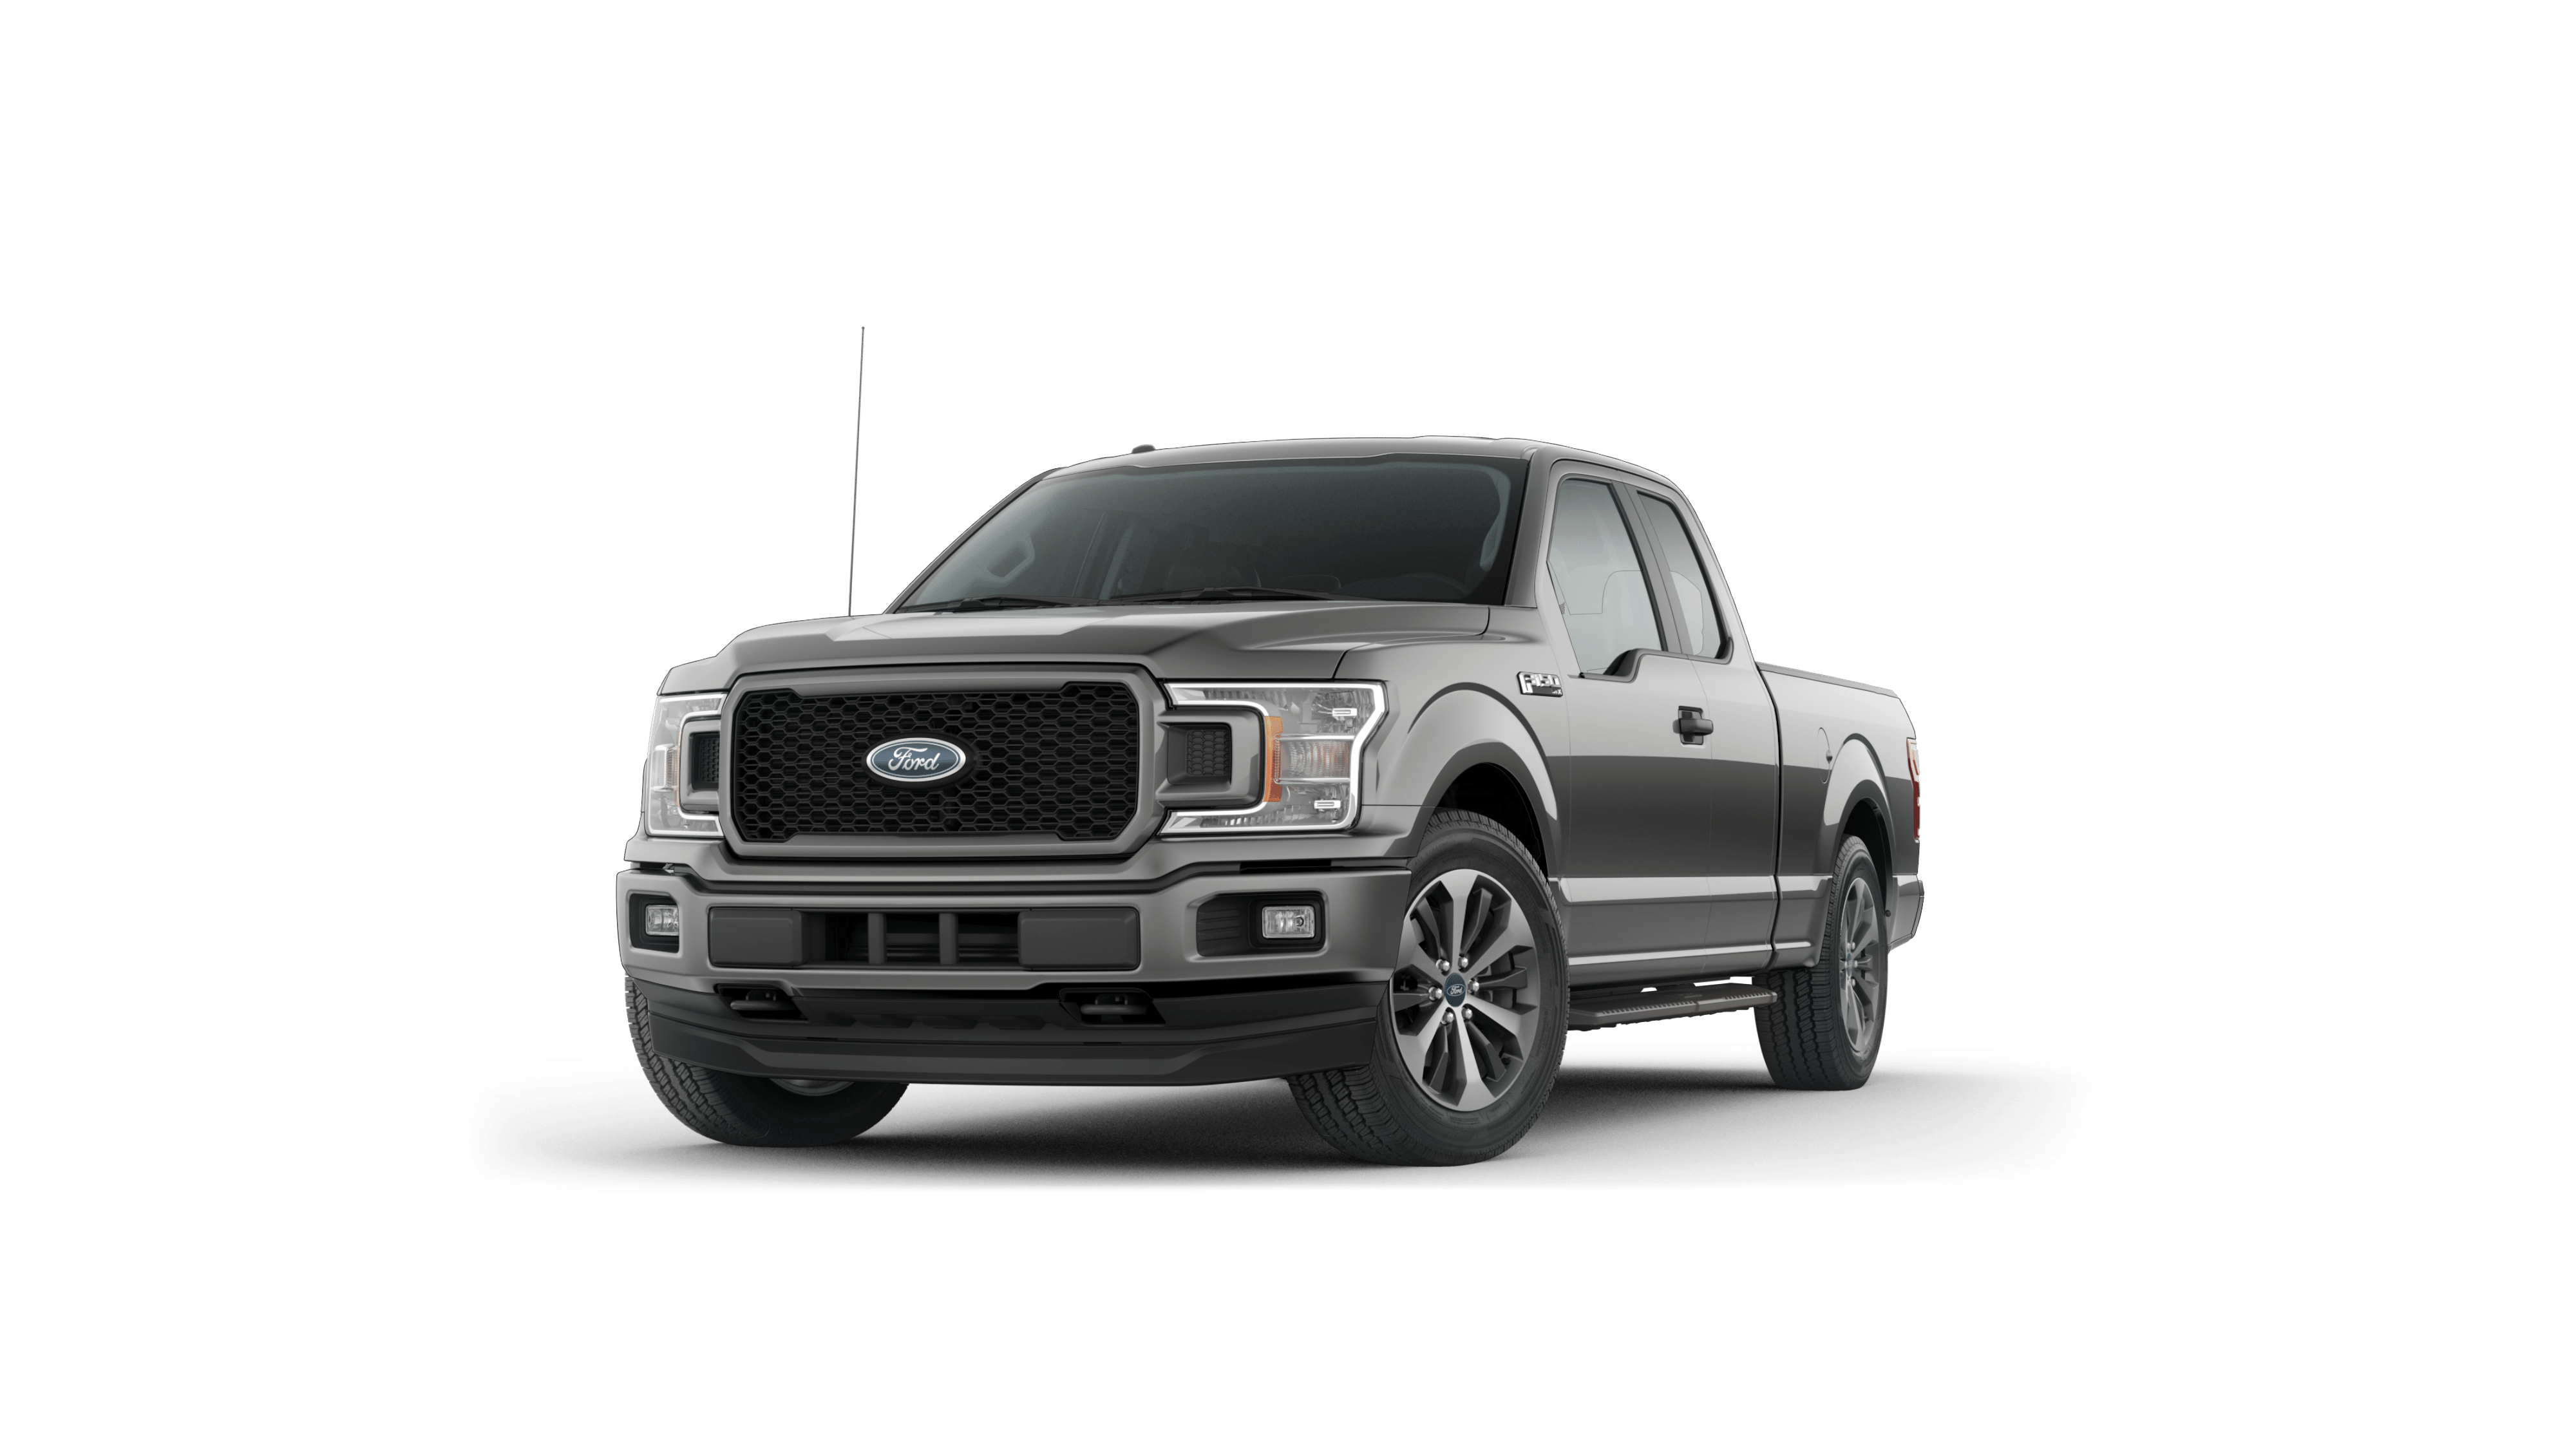 2019 ford f 150 for sale in natrona heights 1ftex1ep8kkc19437 cochran ford. Black Bedroom Furniture Sets. Home Design Ideas